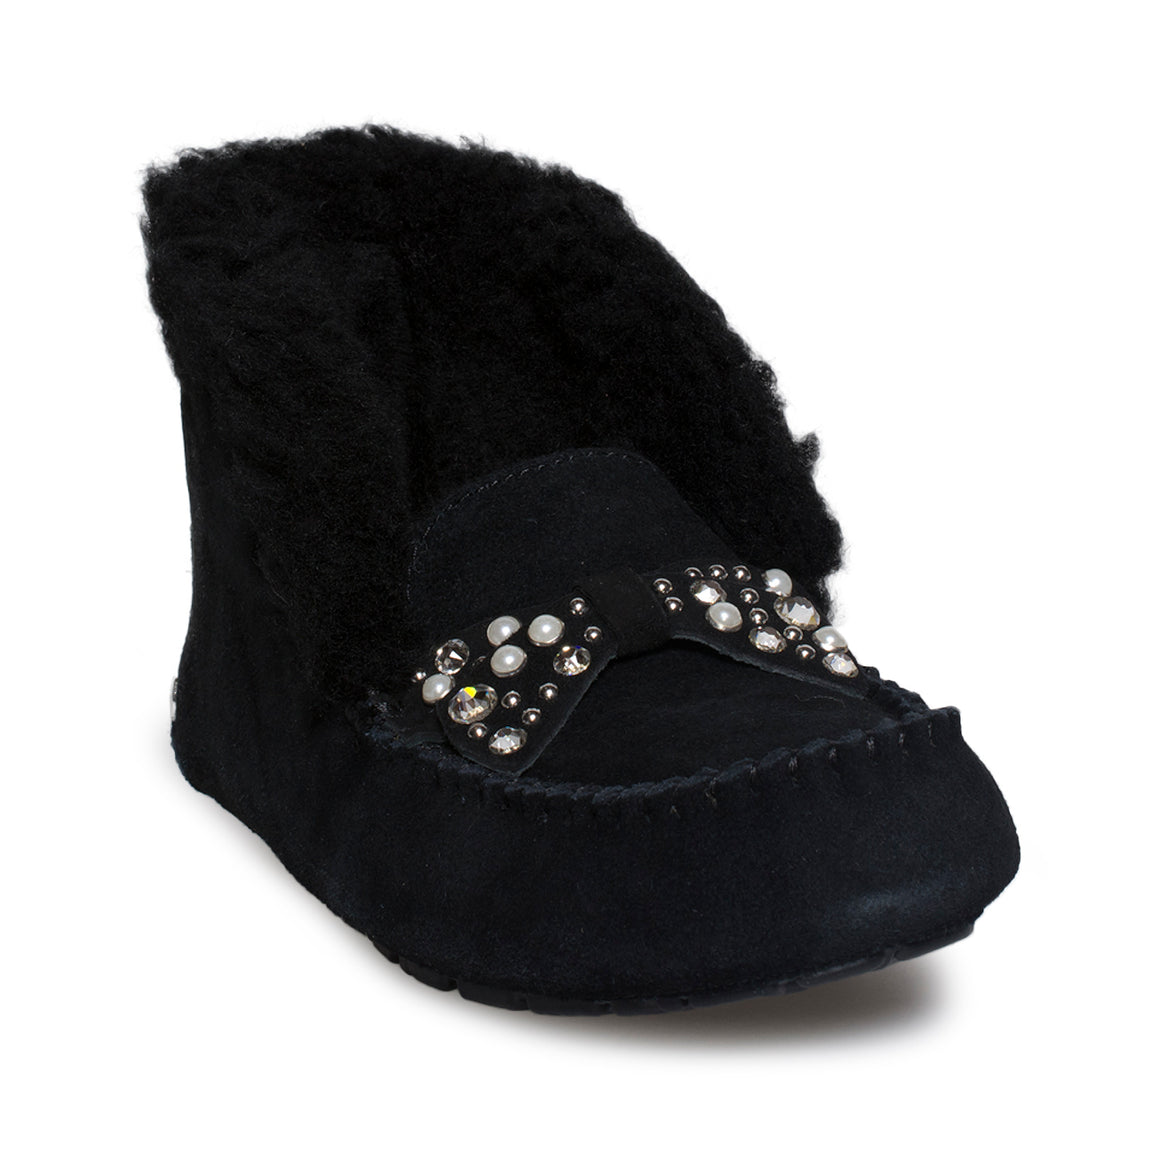 UGG Alena Brilliant Black Slippers